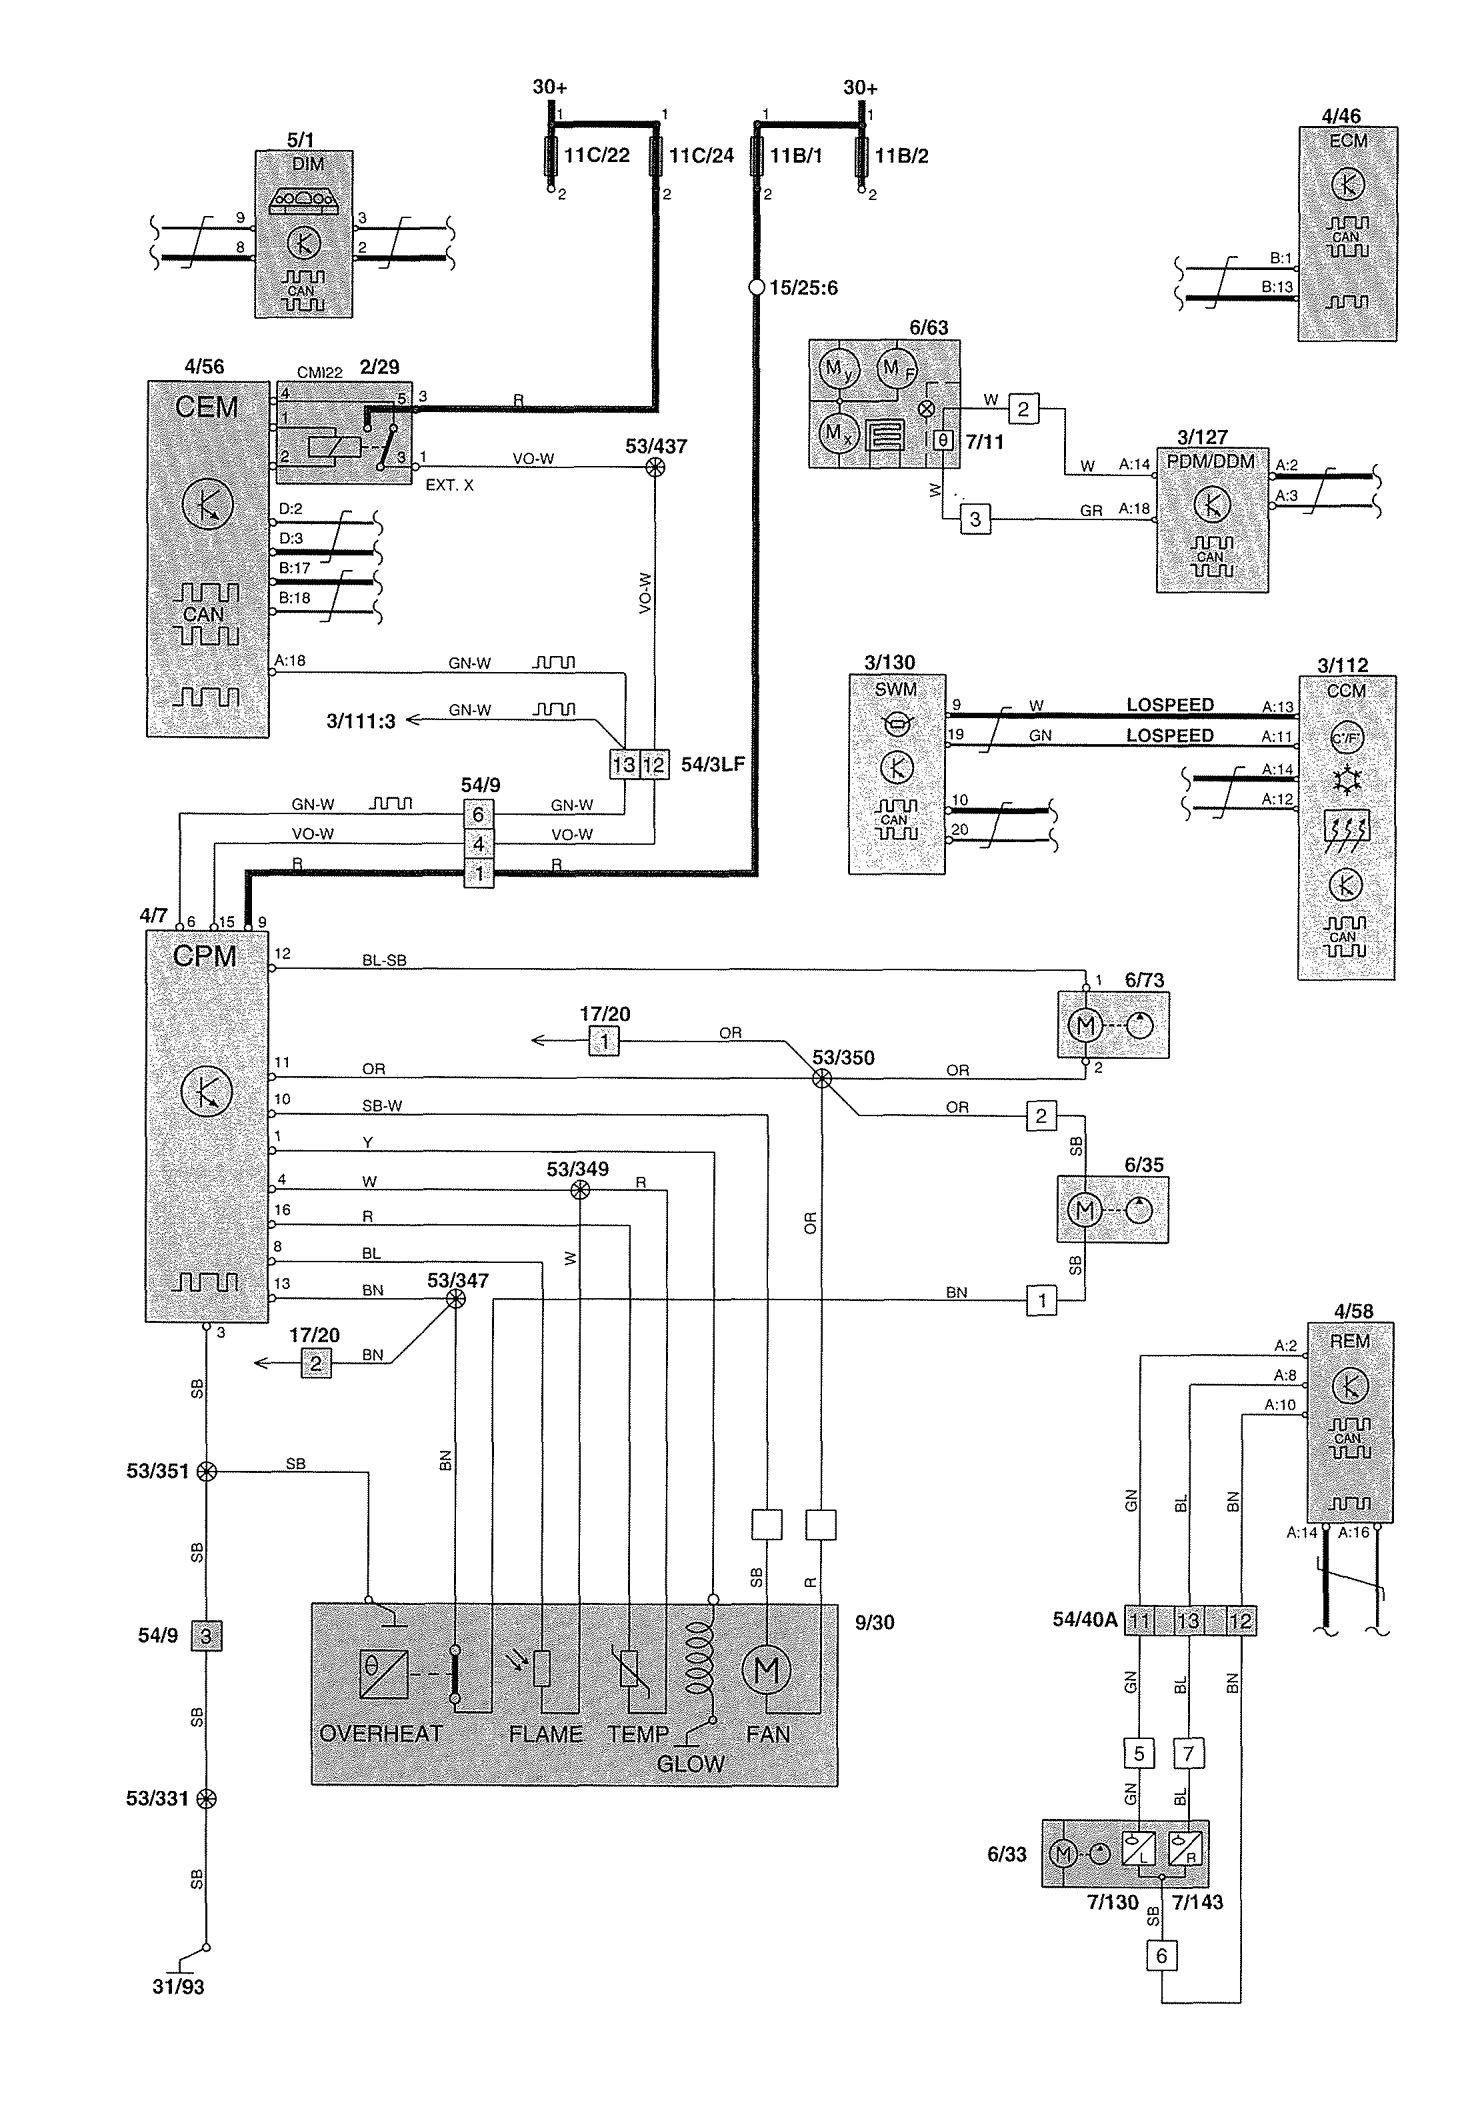 volvo v70 wiring diagram heater 2 2002 jpg